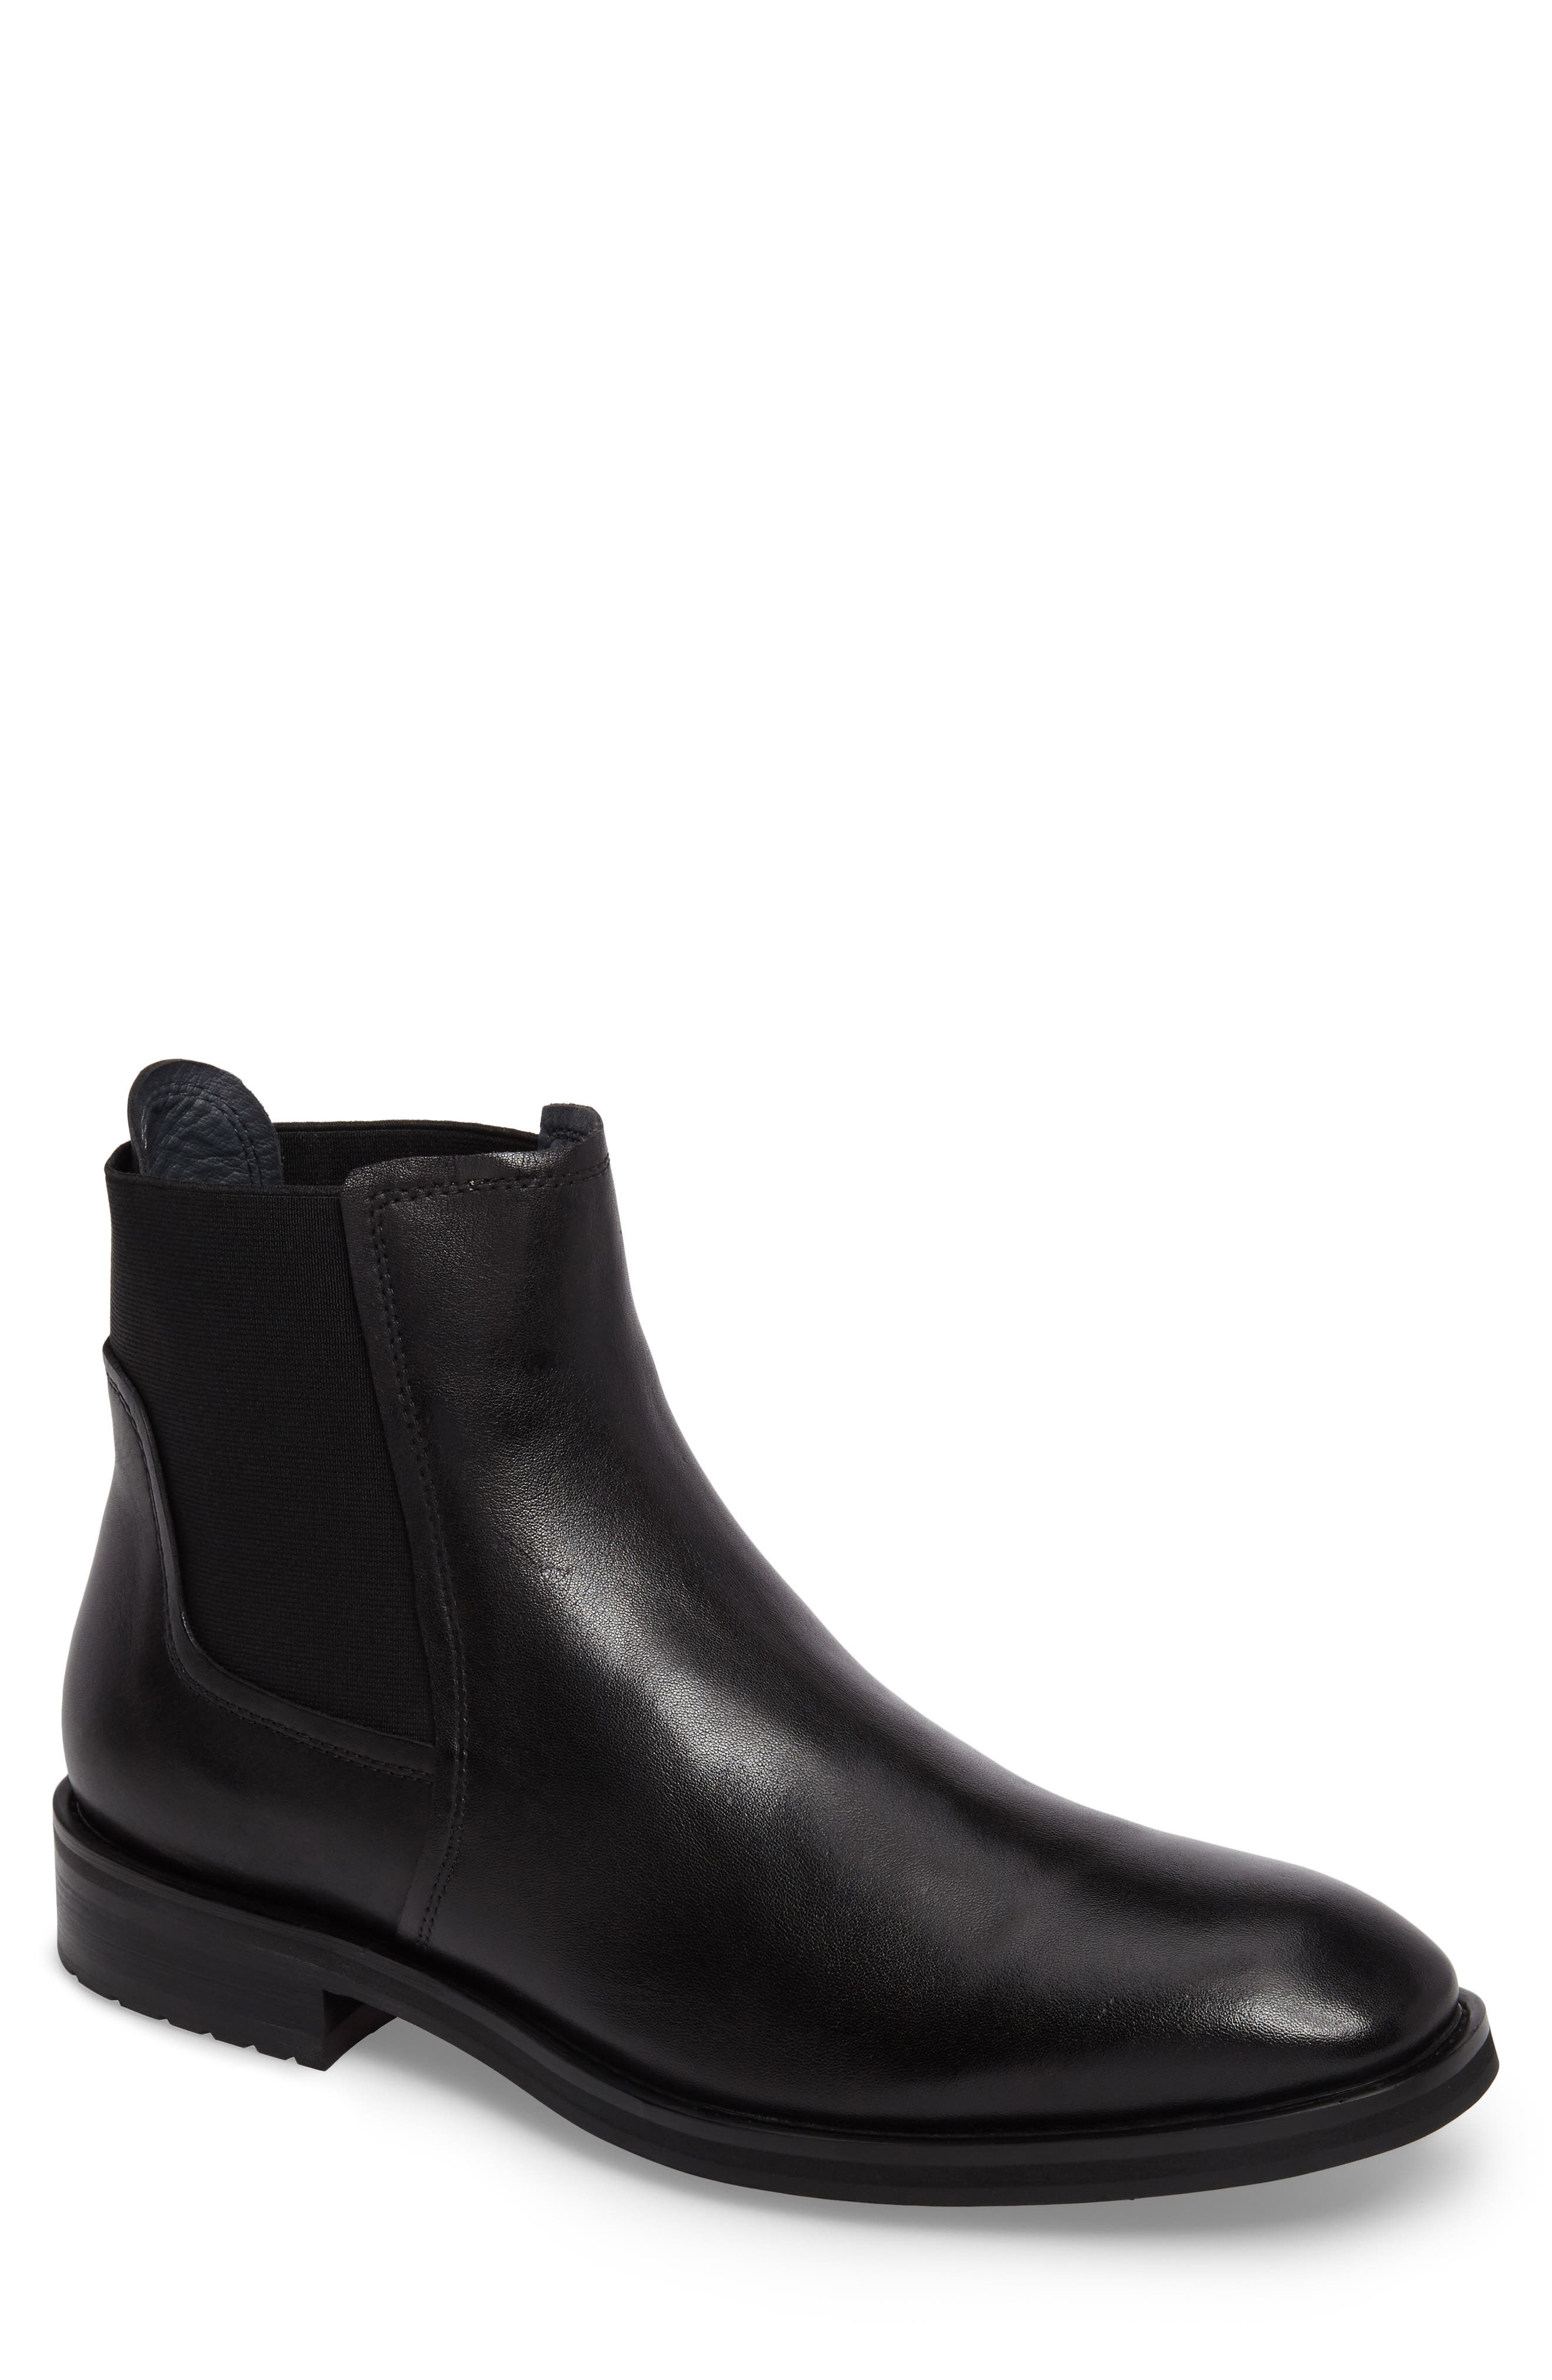 Belmont Chelsea Boot,                         Main,                         color, 001